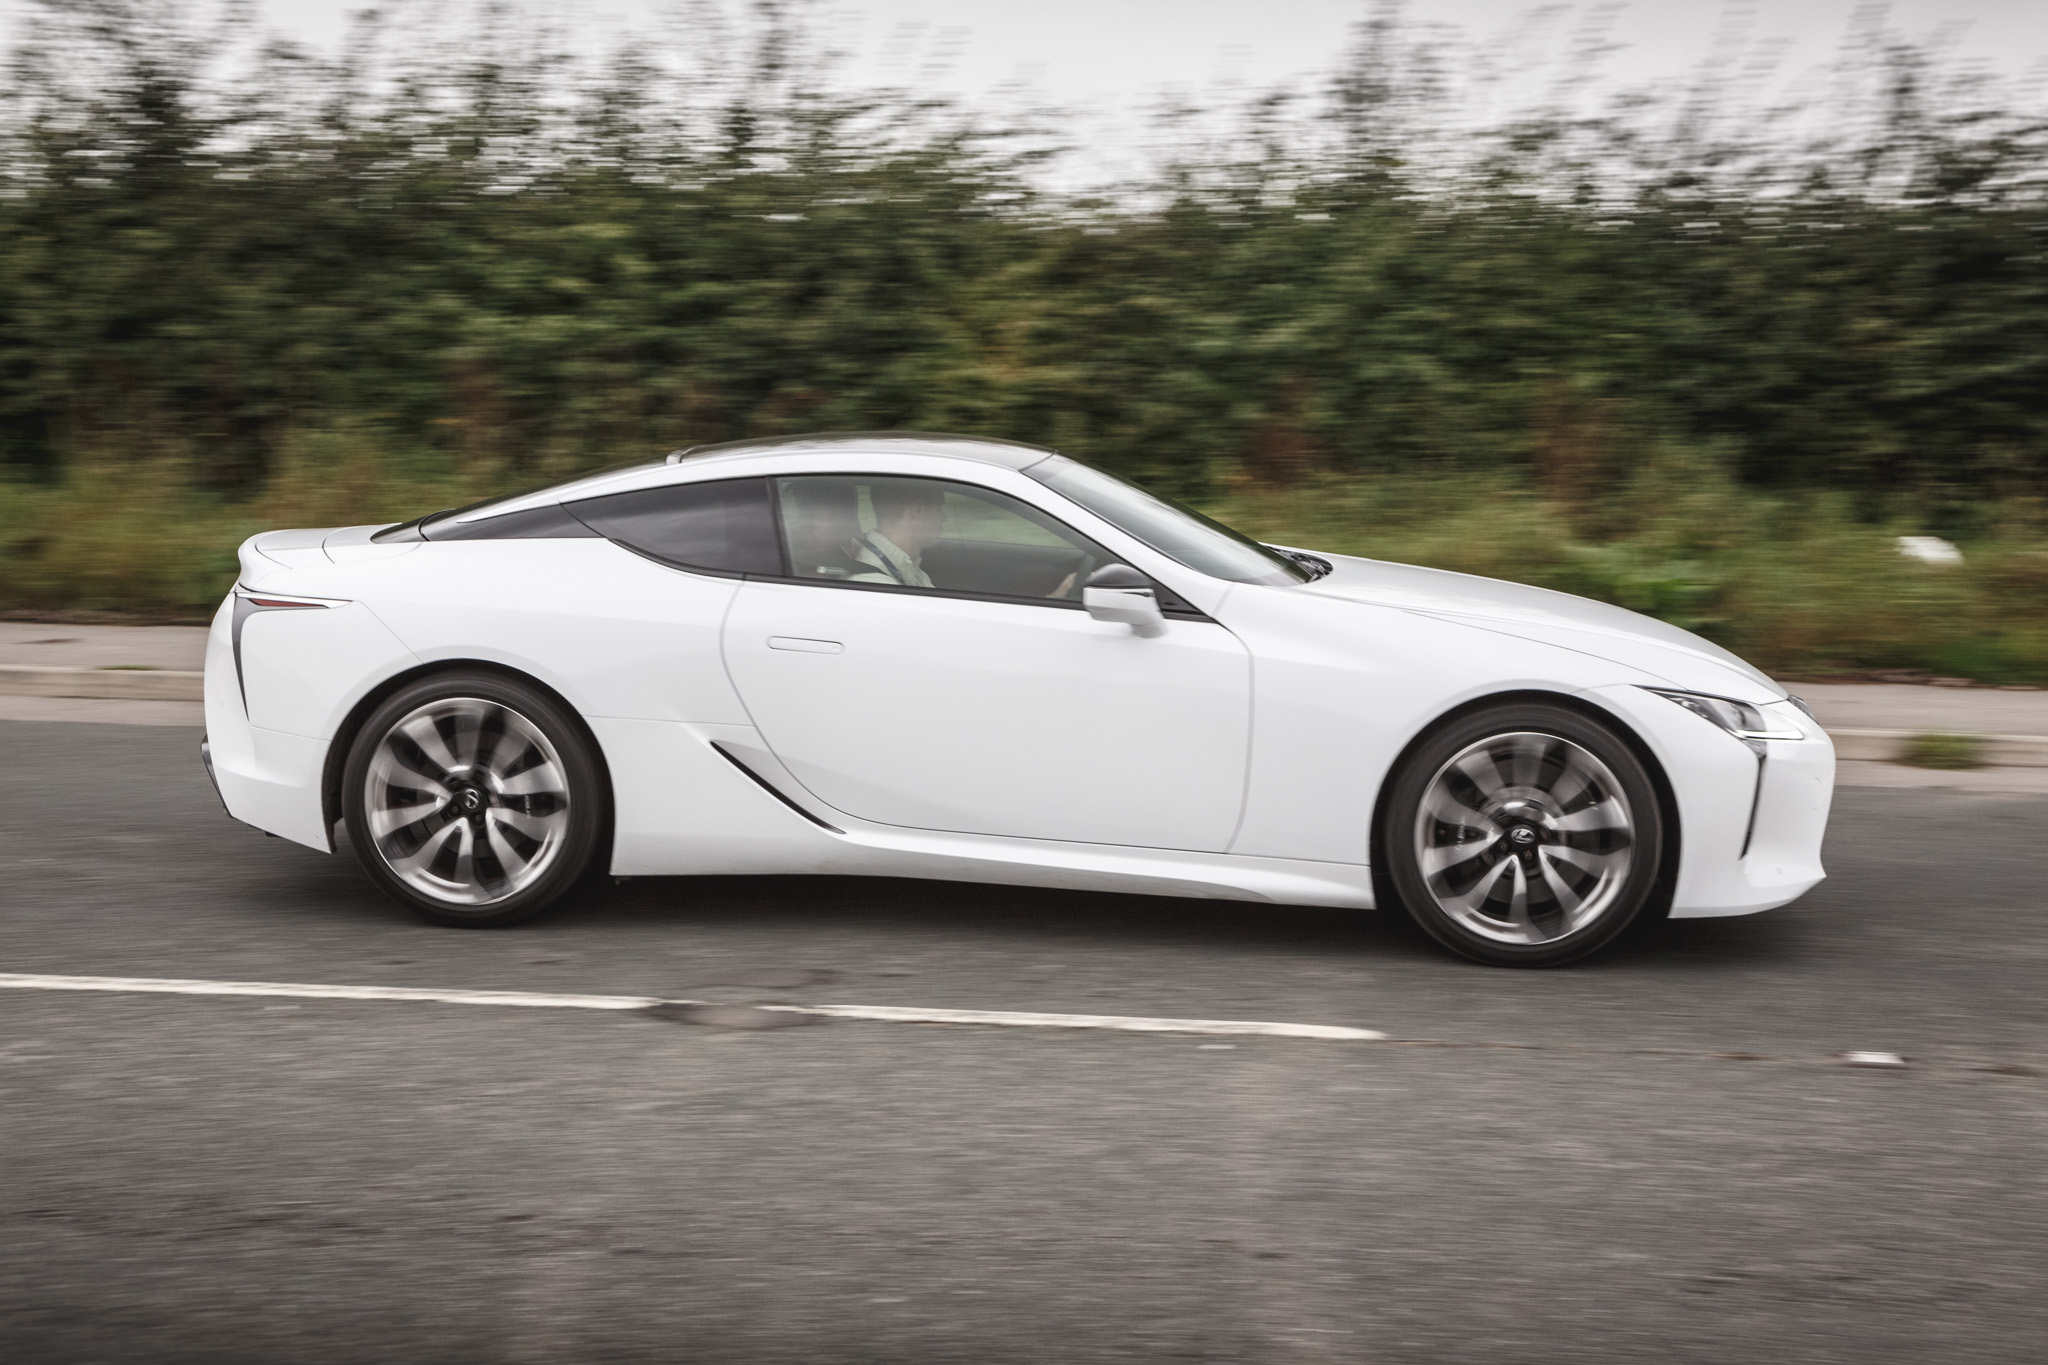 2017 Lexus Lc500 Reviewed Motor Verso